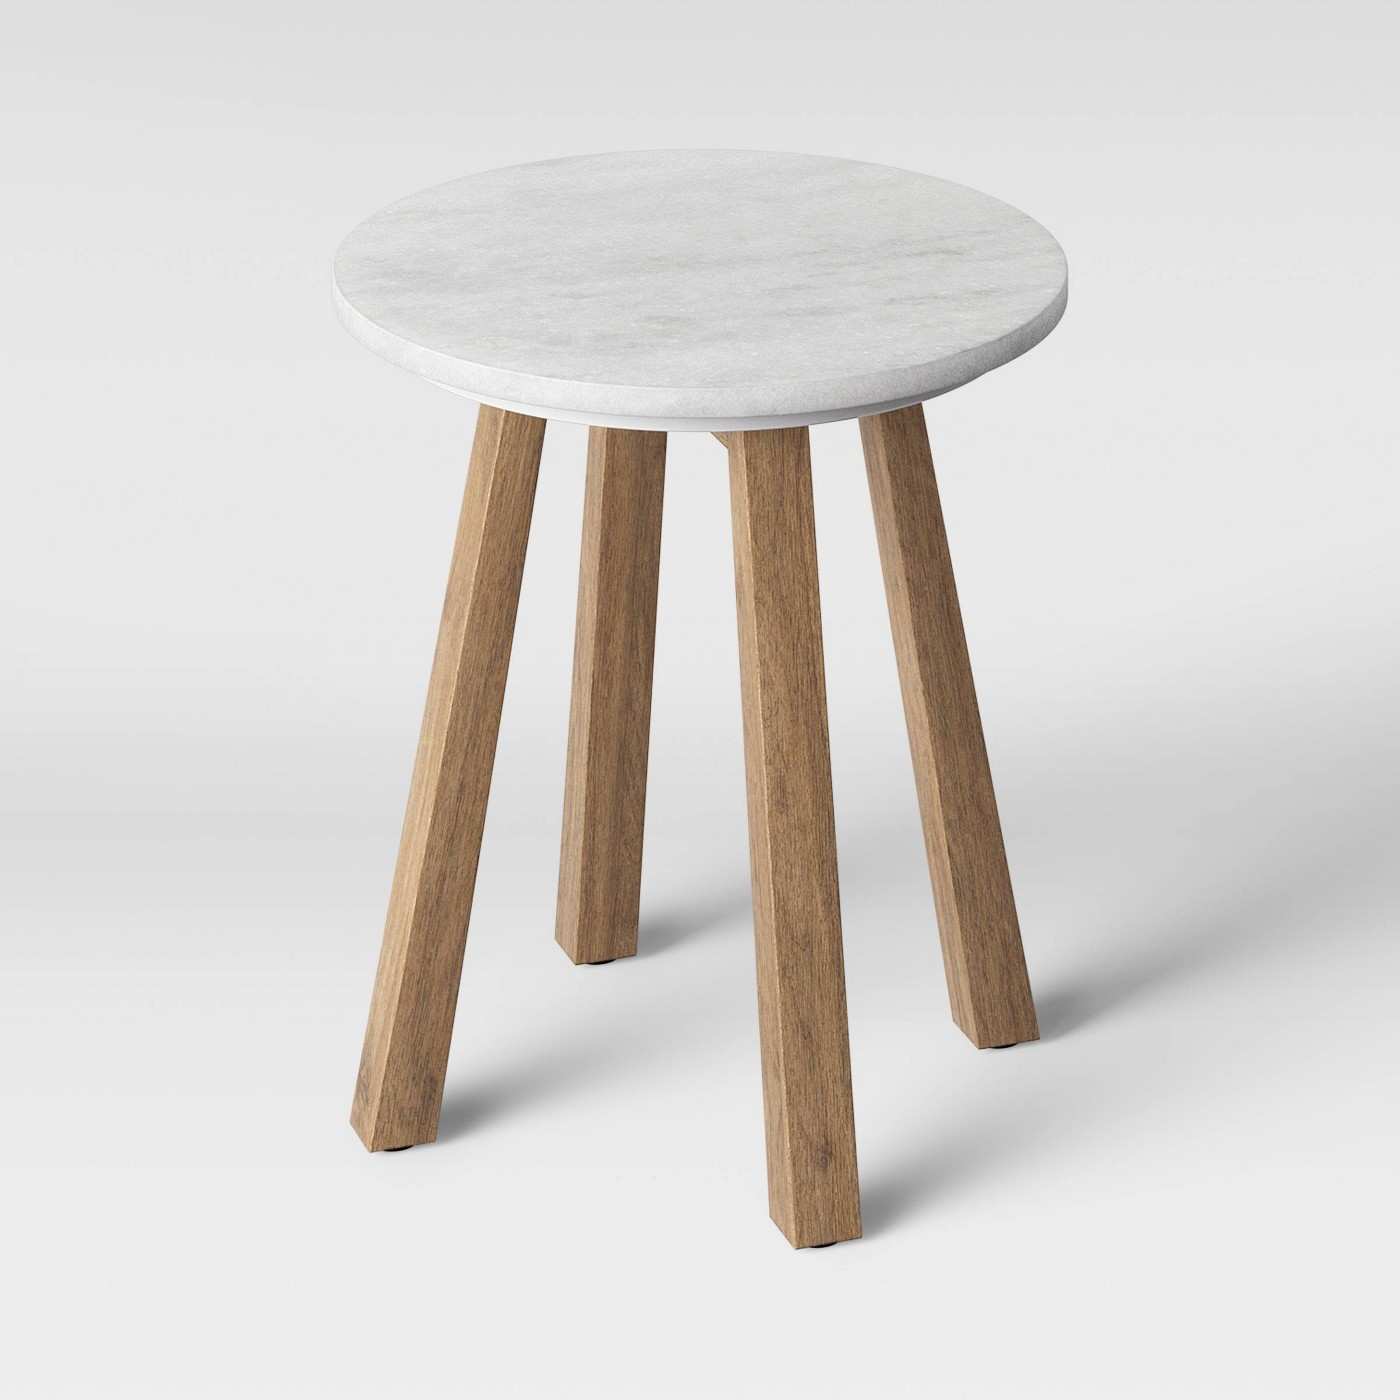 Norwich Marble Top Accent Table with Wood Base White - Threshold⢠- image 3 of 3